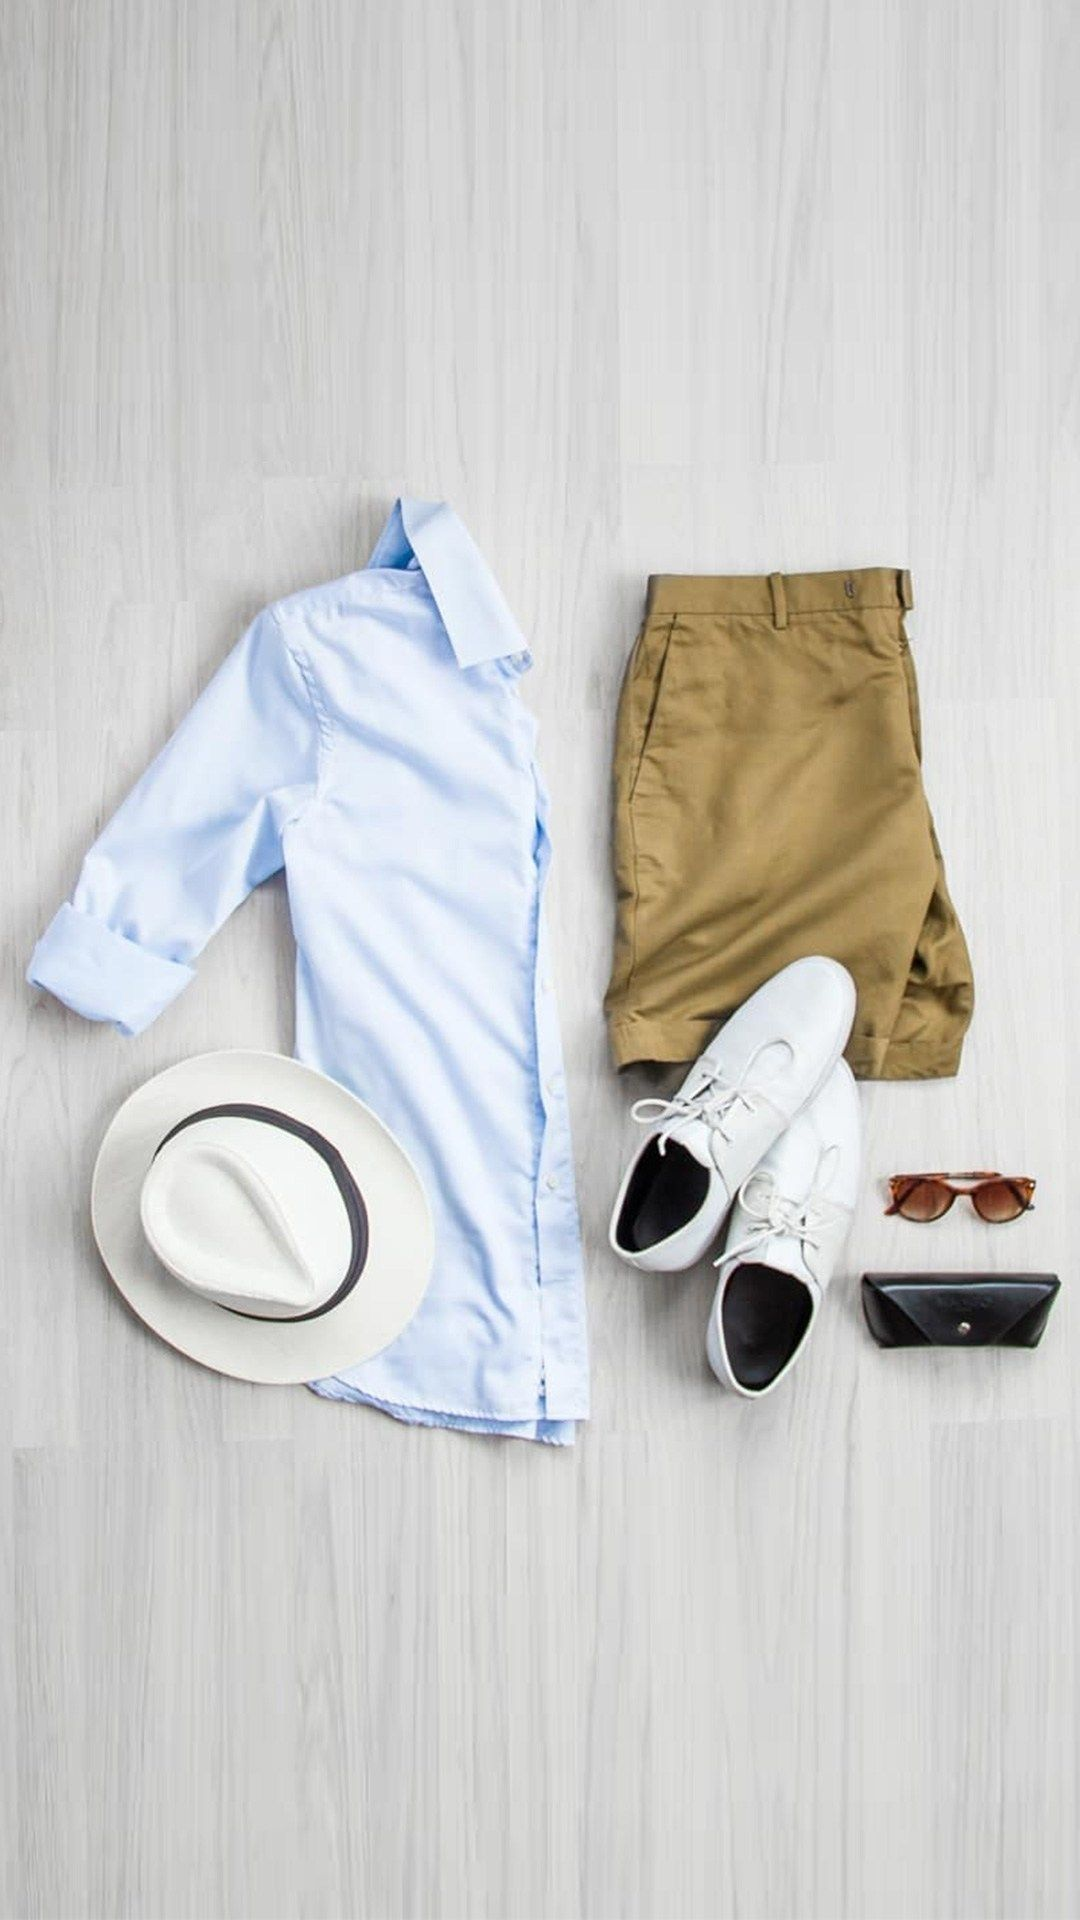 15 Reasons Why Men Should Refer Outfit Grids For Styling #outfitgrid